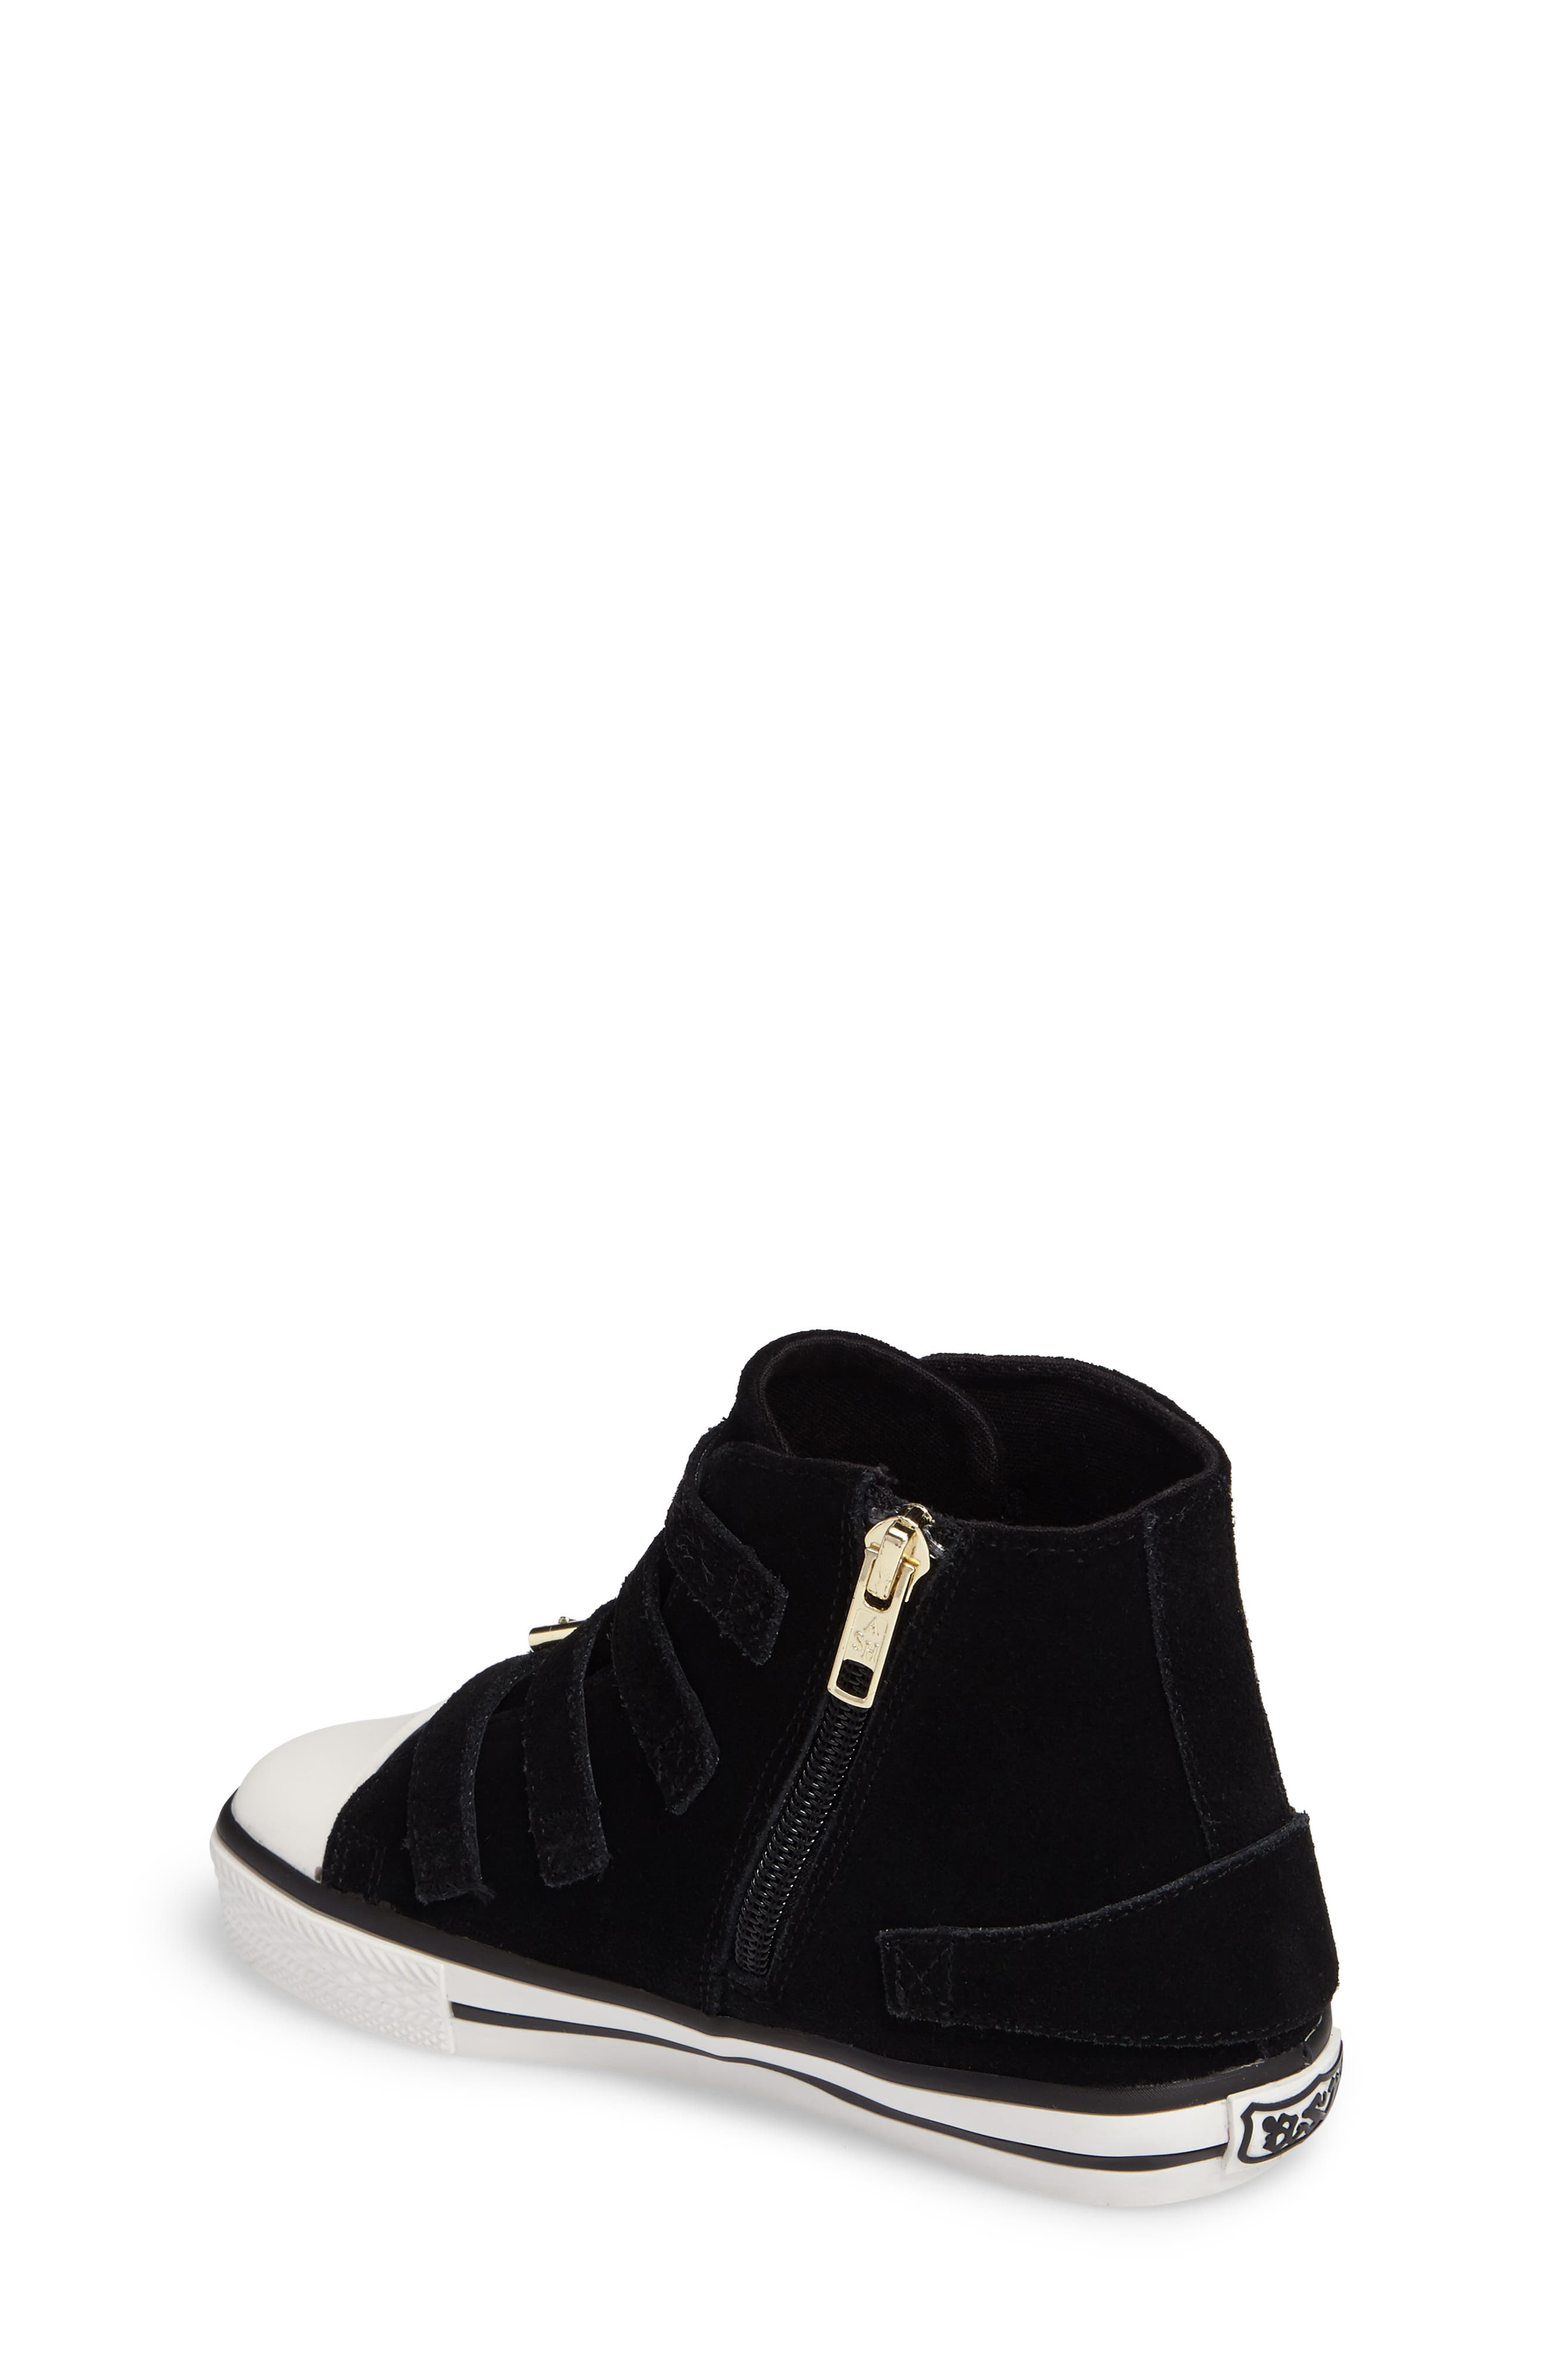 Vava Flowers Embroidered High Top Sneaker,                             Alternate thumbnail 2, color,                             Black Suede